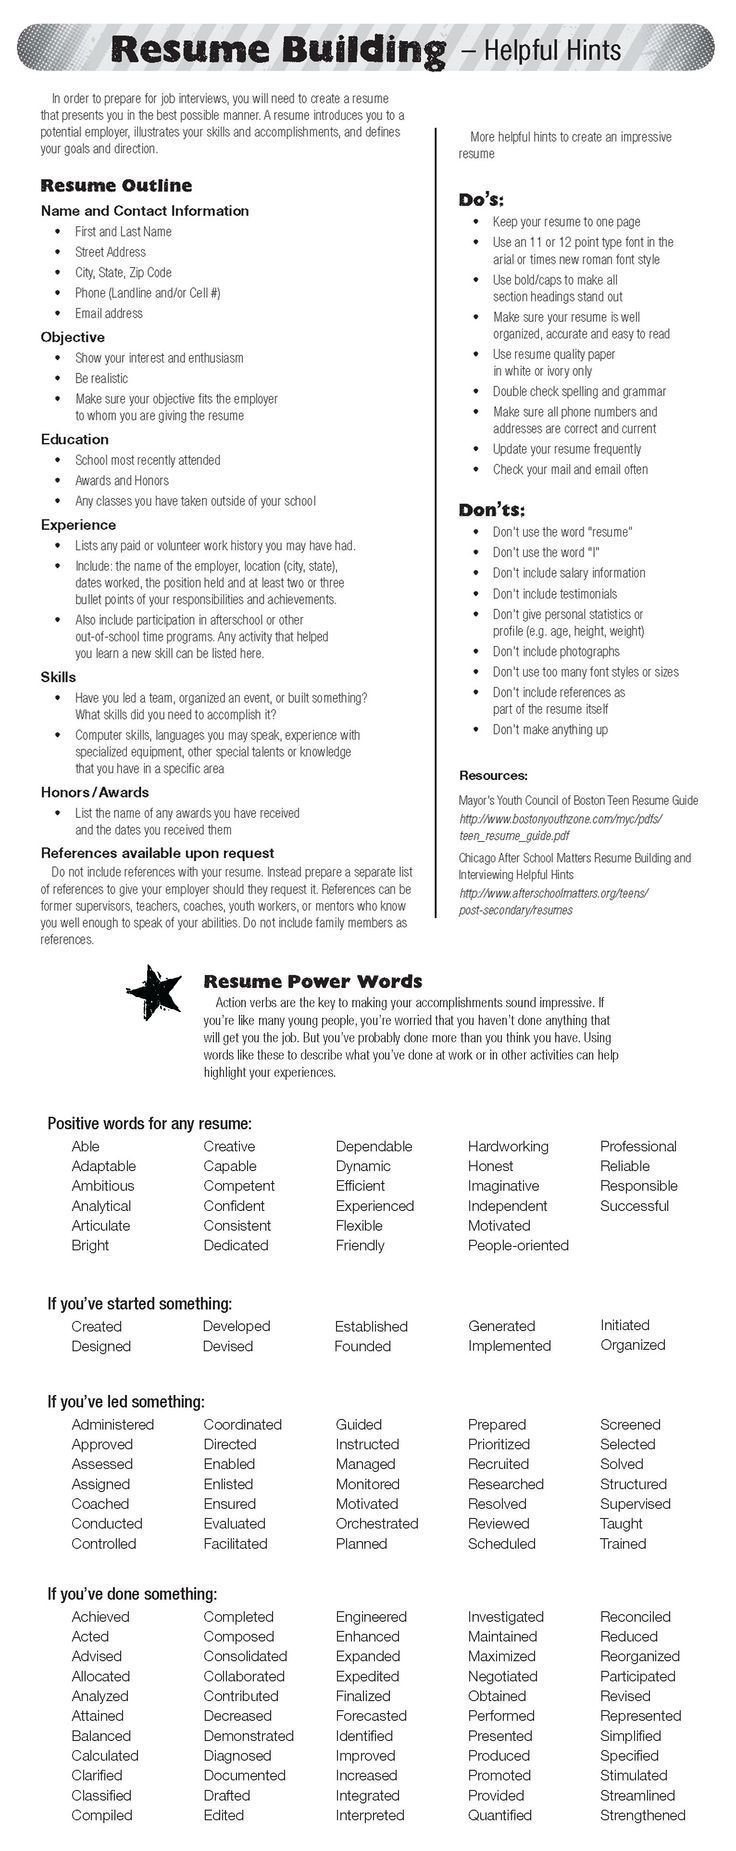 List Of Resume Skills New 119 Best Job Resume Images On Pinterest  Gym Career And Productivity